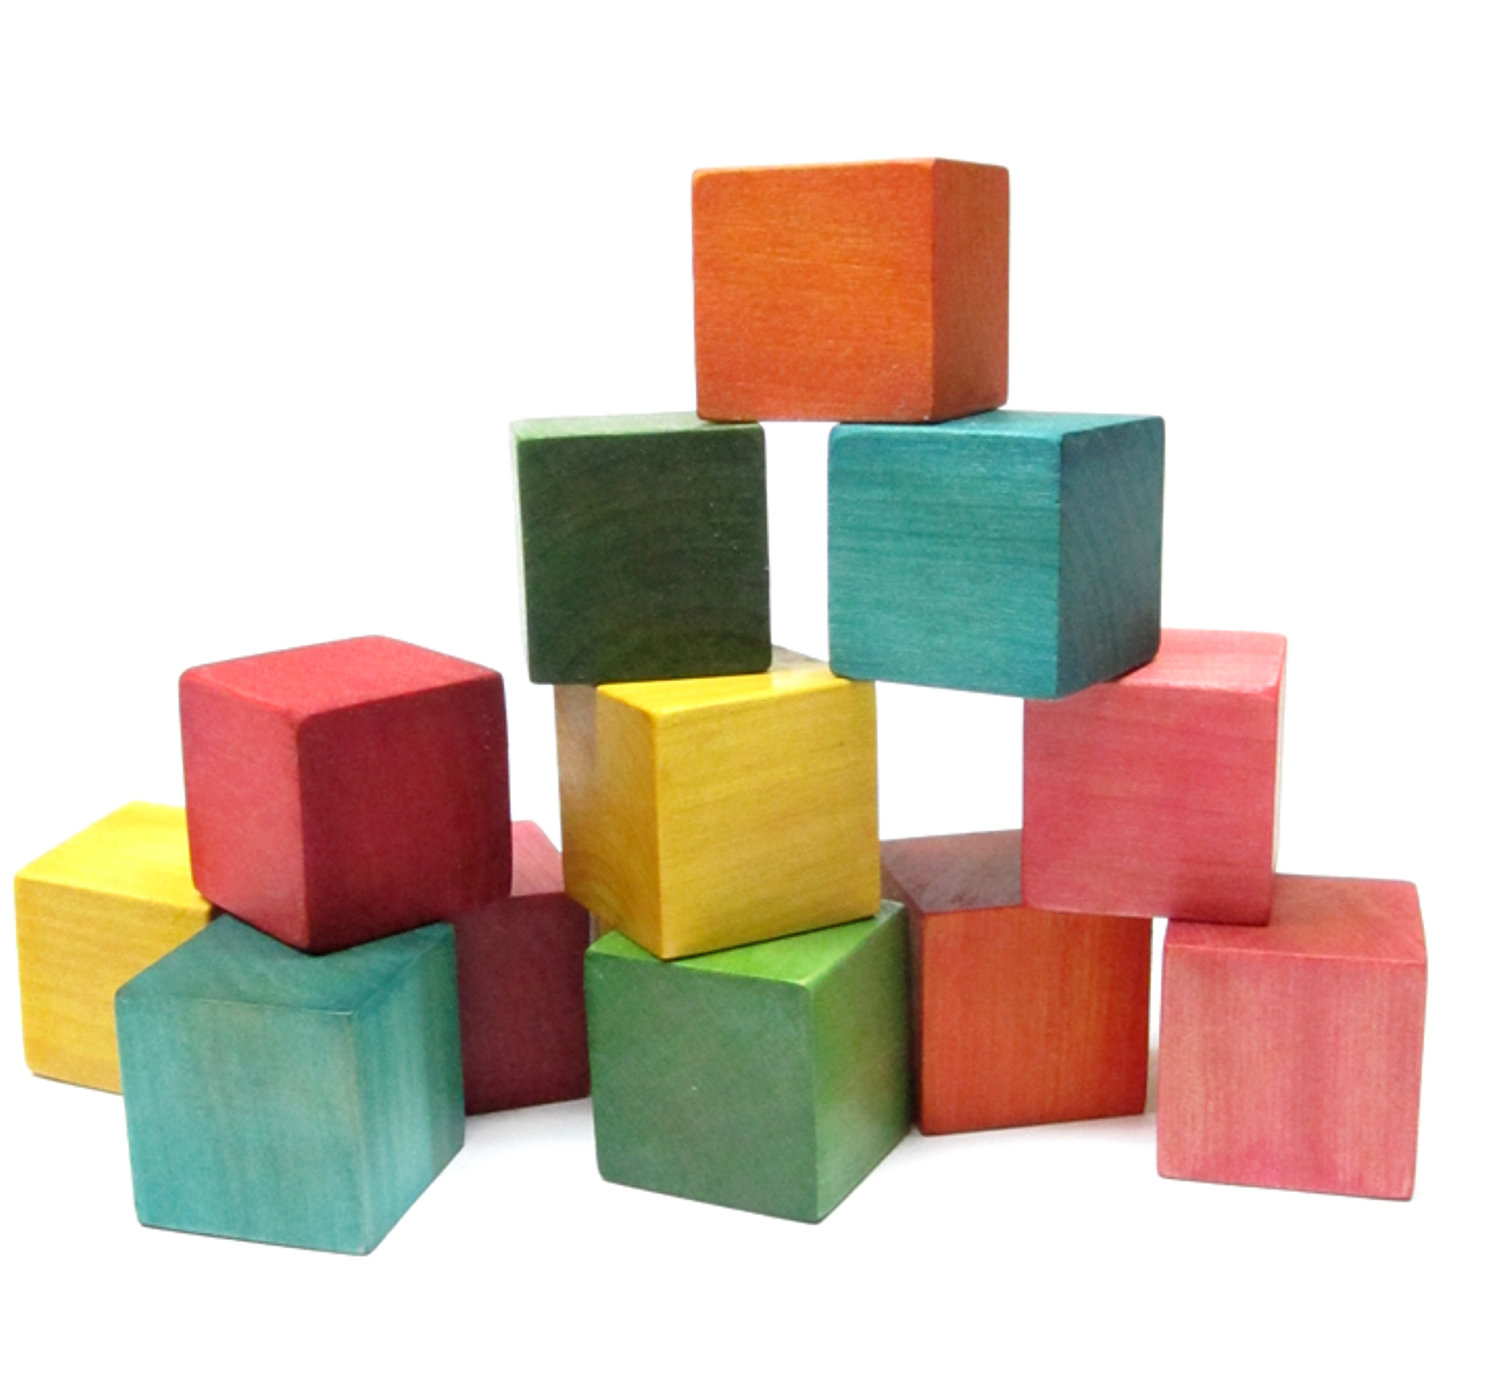 1500x1387 Free Clipart Building Blocks